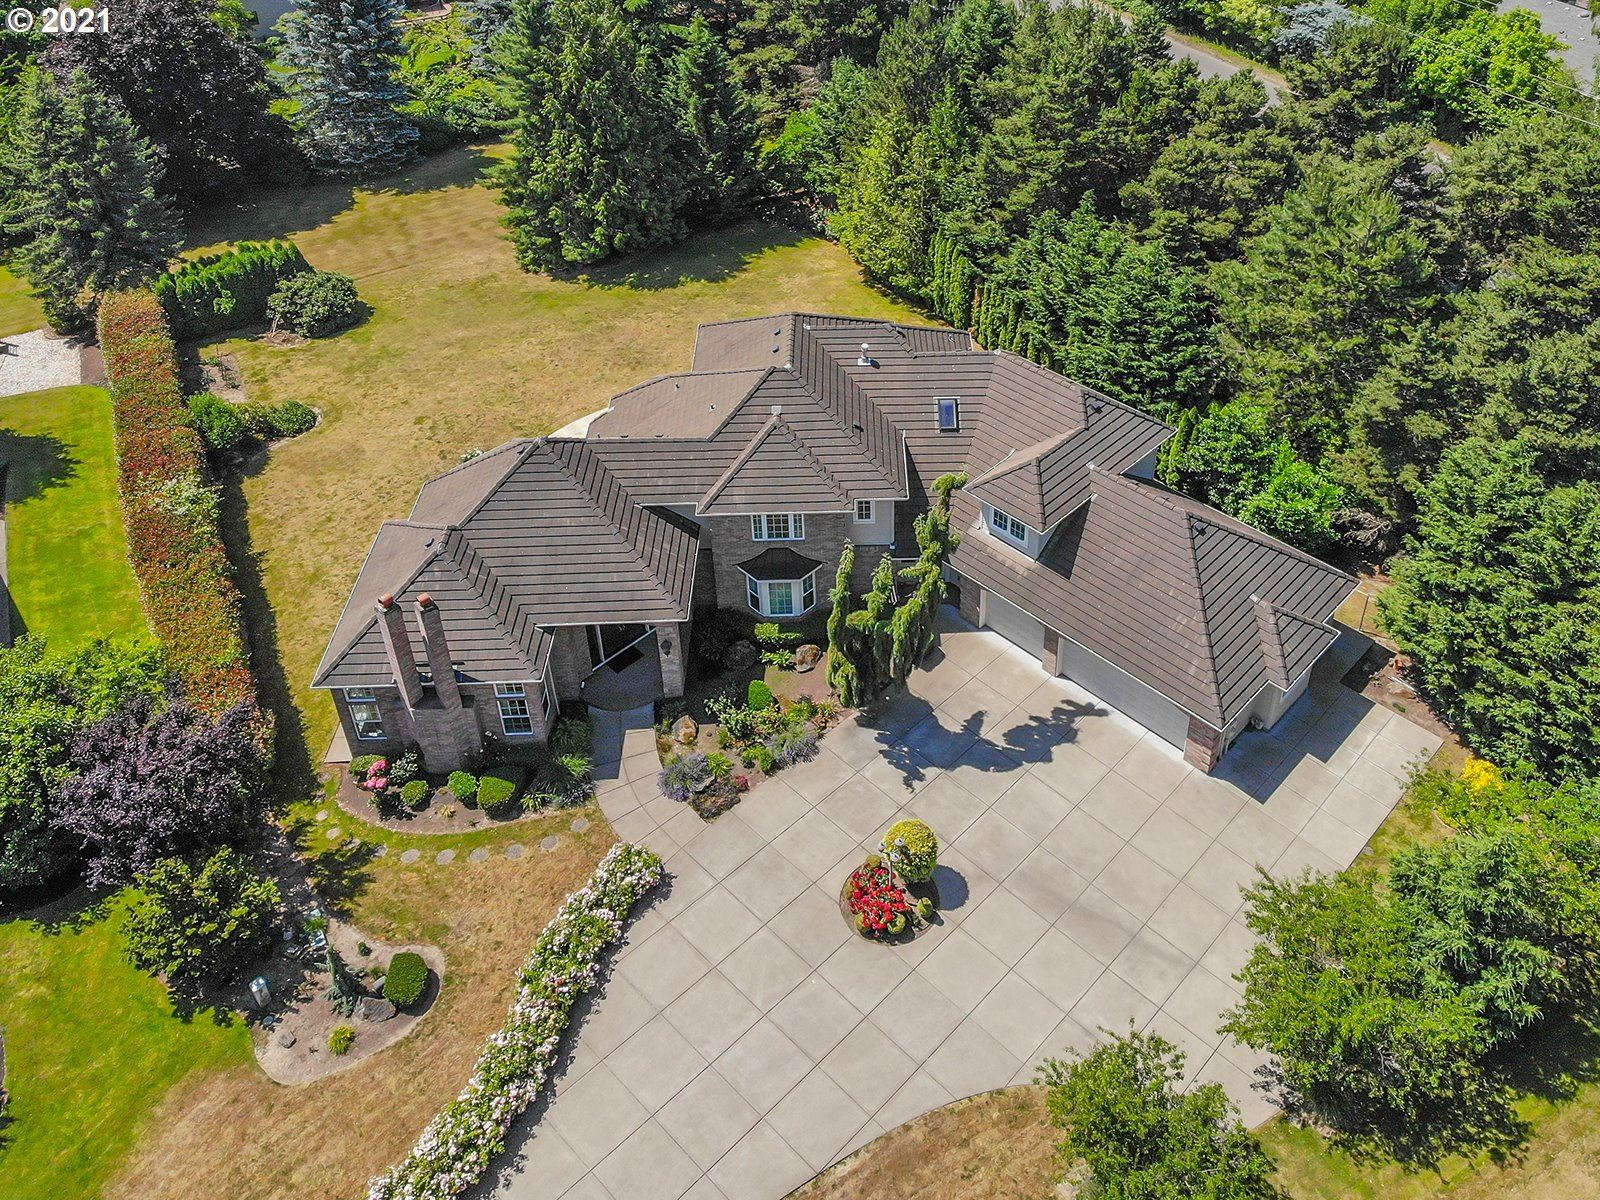 14260 NW LINMERE LN, Portland, OR 97229 - MLS#: 21442324